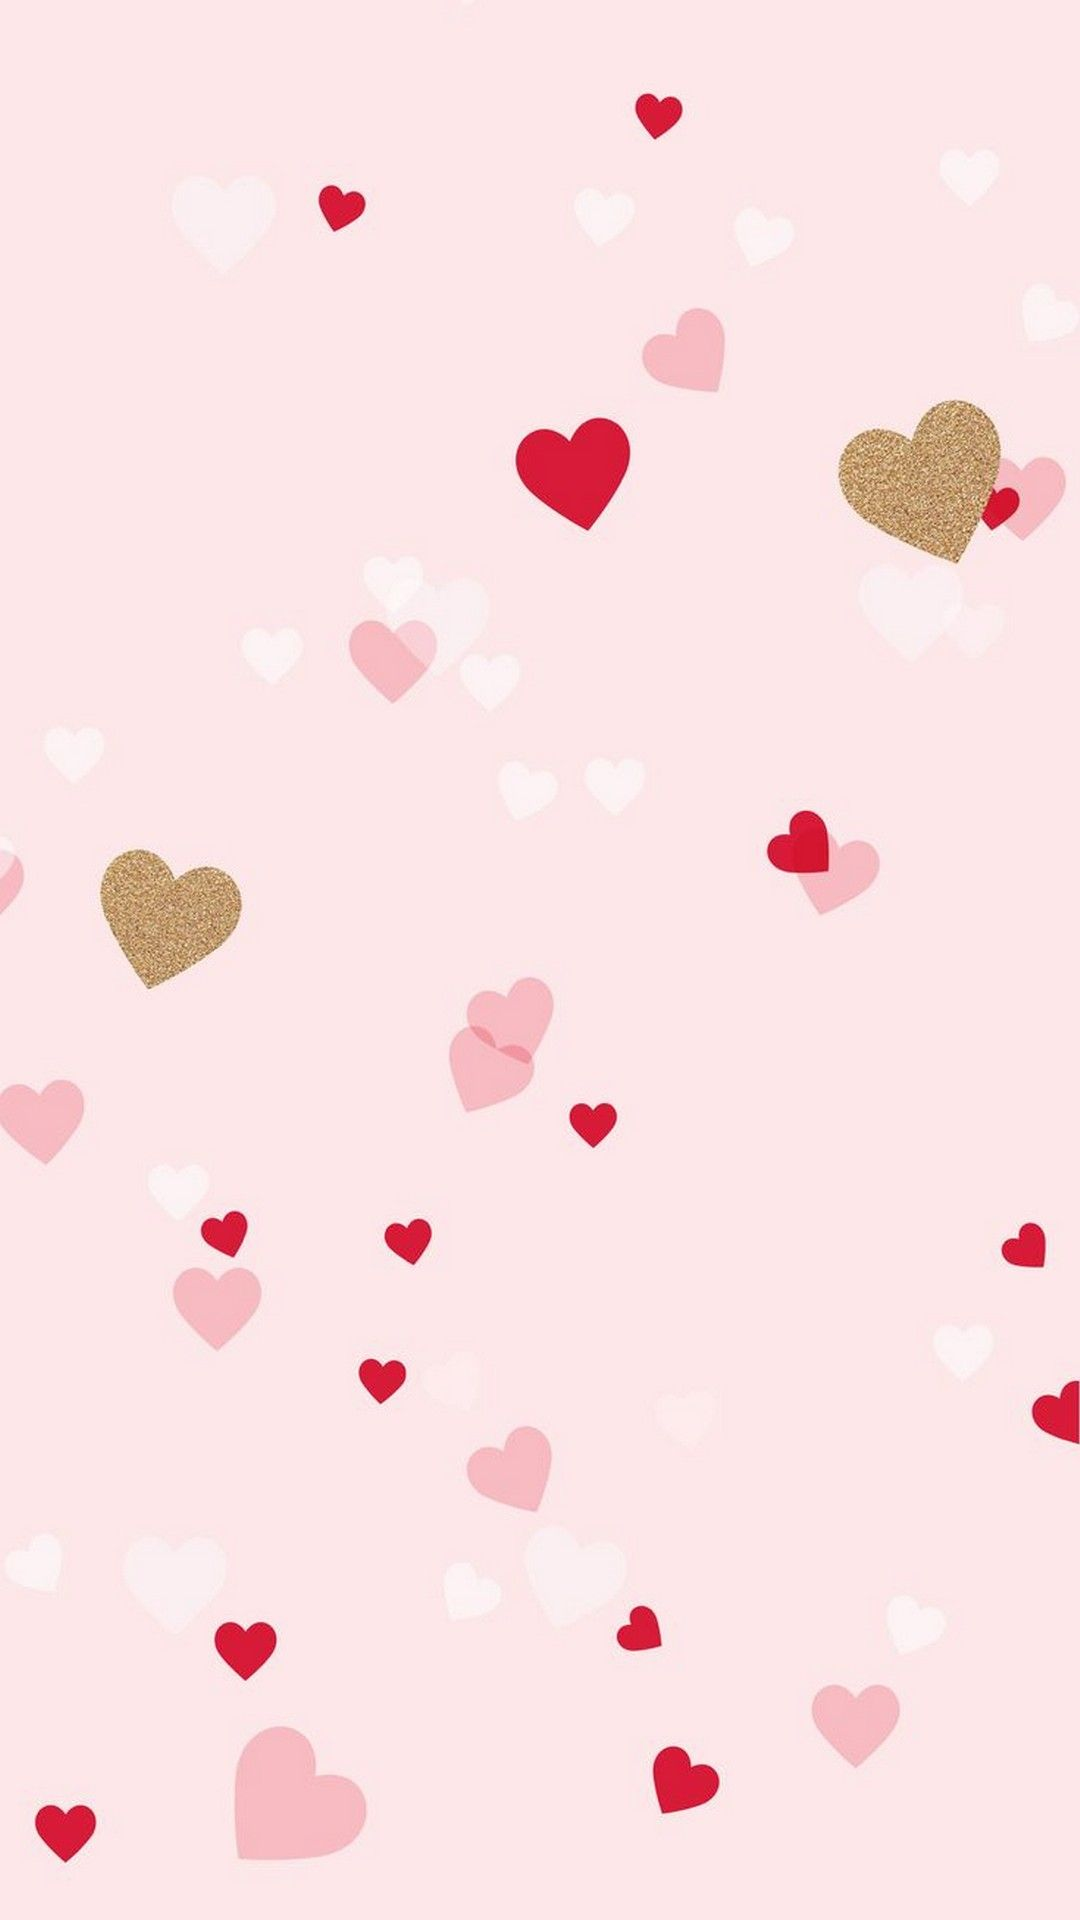 valentine wallpaper for iphone 7 iphonewallpapers wallpapervalentine wallpaper for iphone 7 best iphone wallpaper